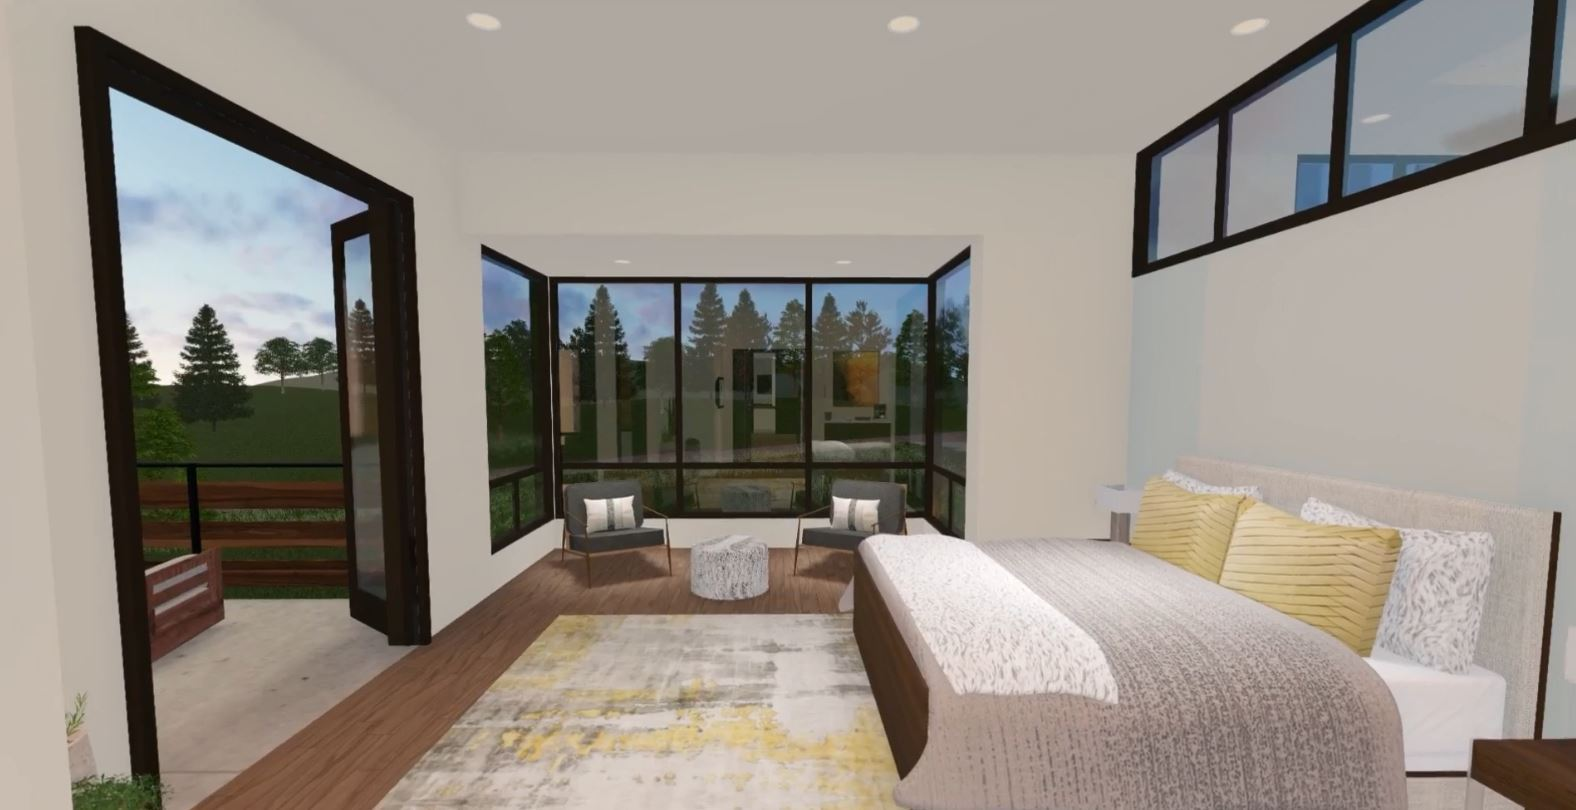 Bedroom featured in the Camelot (Slab) By Galiant Homes in Colorado Springs, CO